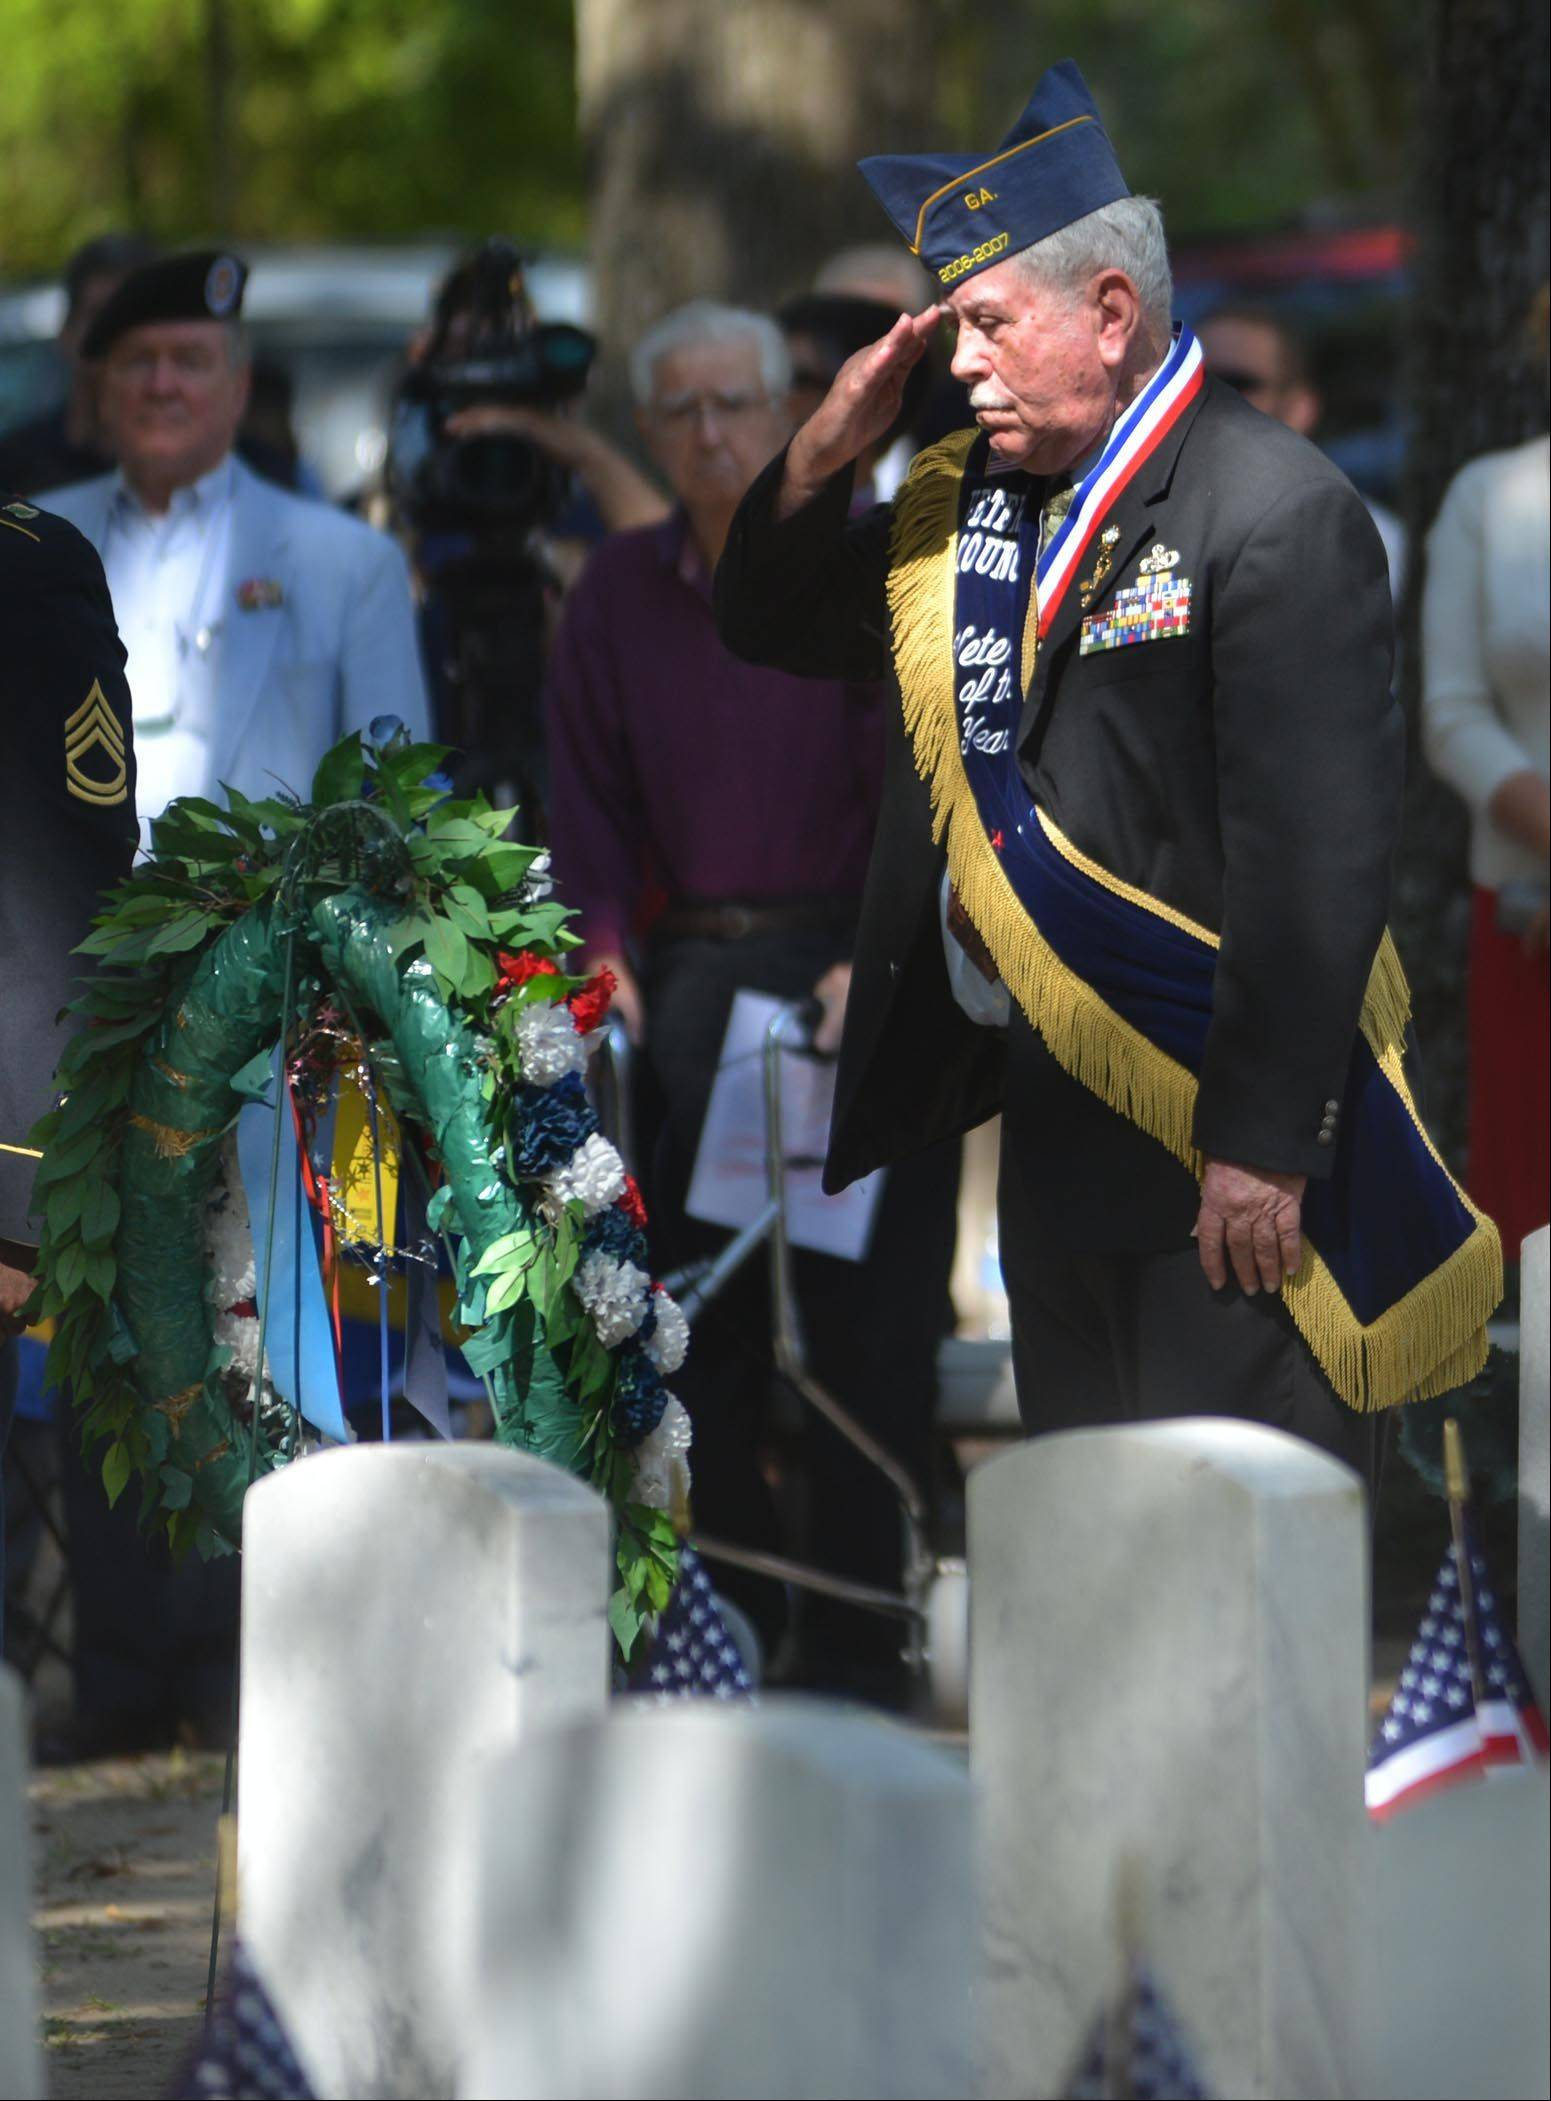 Chatham County Veteran of the Year Jim Vaughan salutes after laying a wreath during Memorial Day ceremonies at Bonaventure Cemetery in Savannah, Ga., Monday, May 27, 2013.